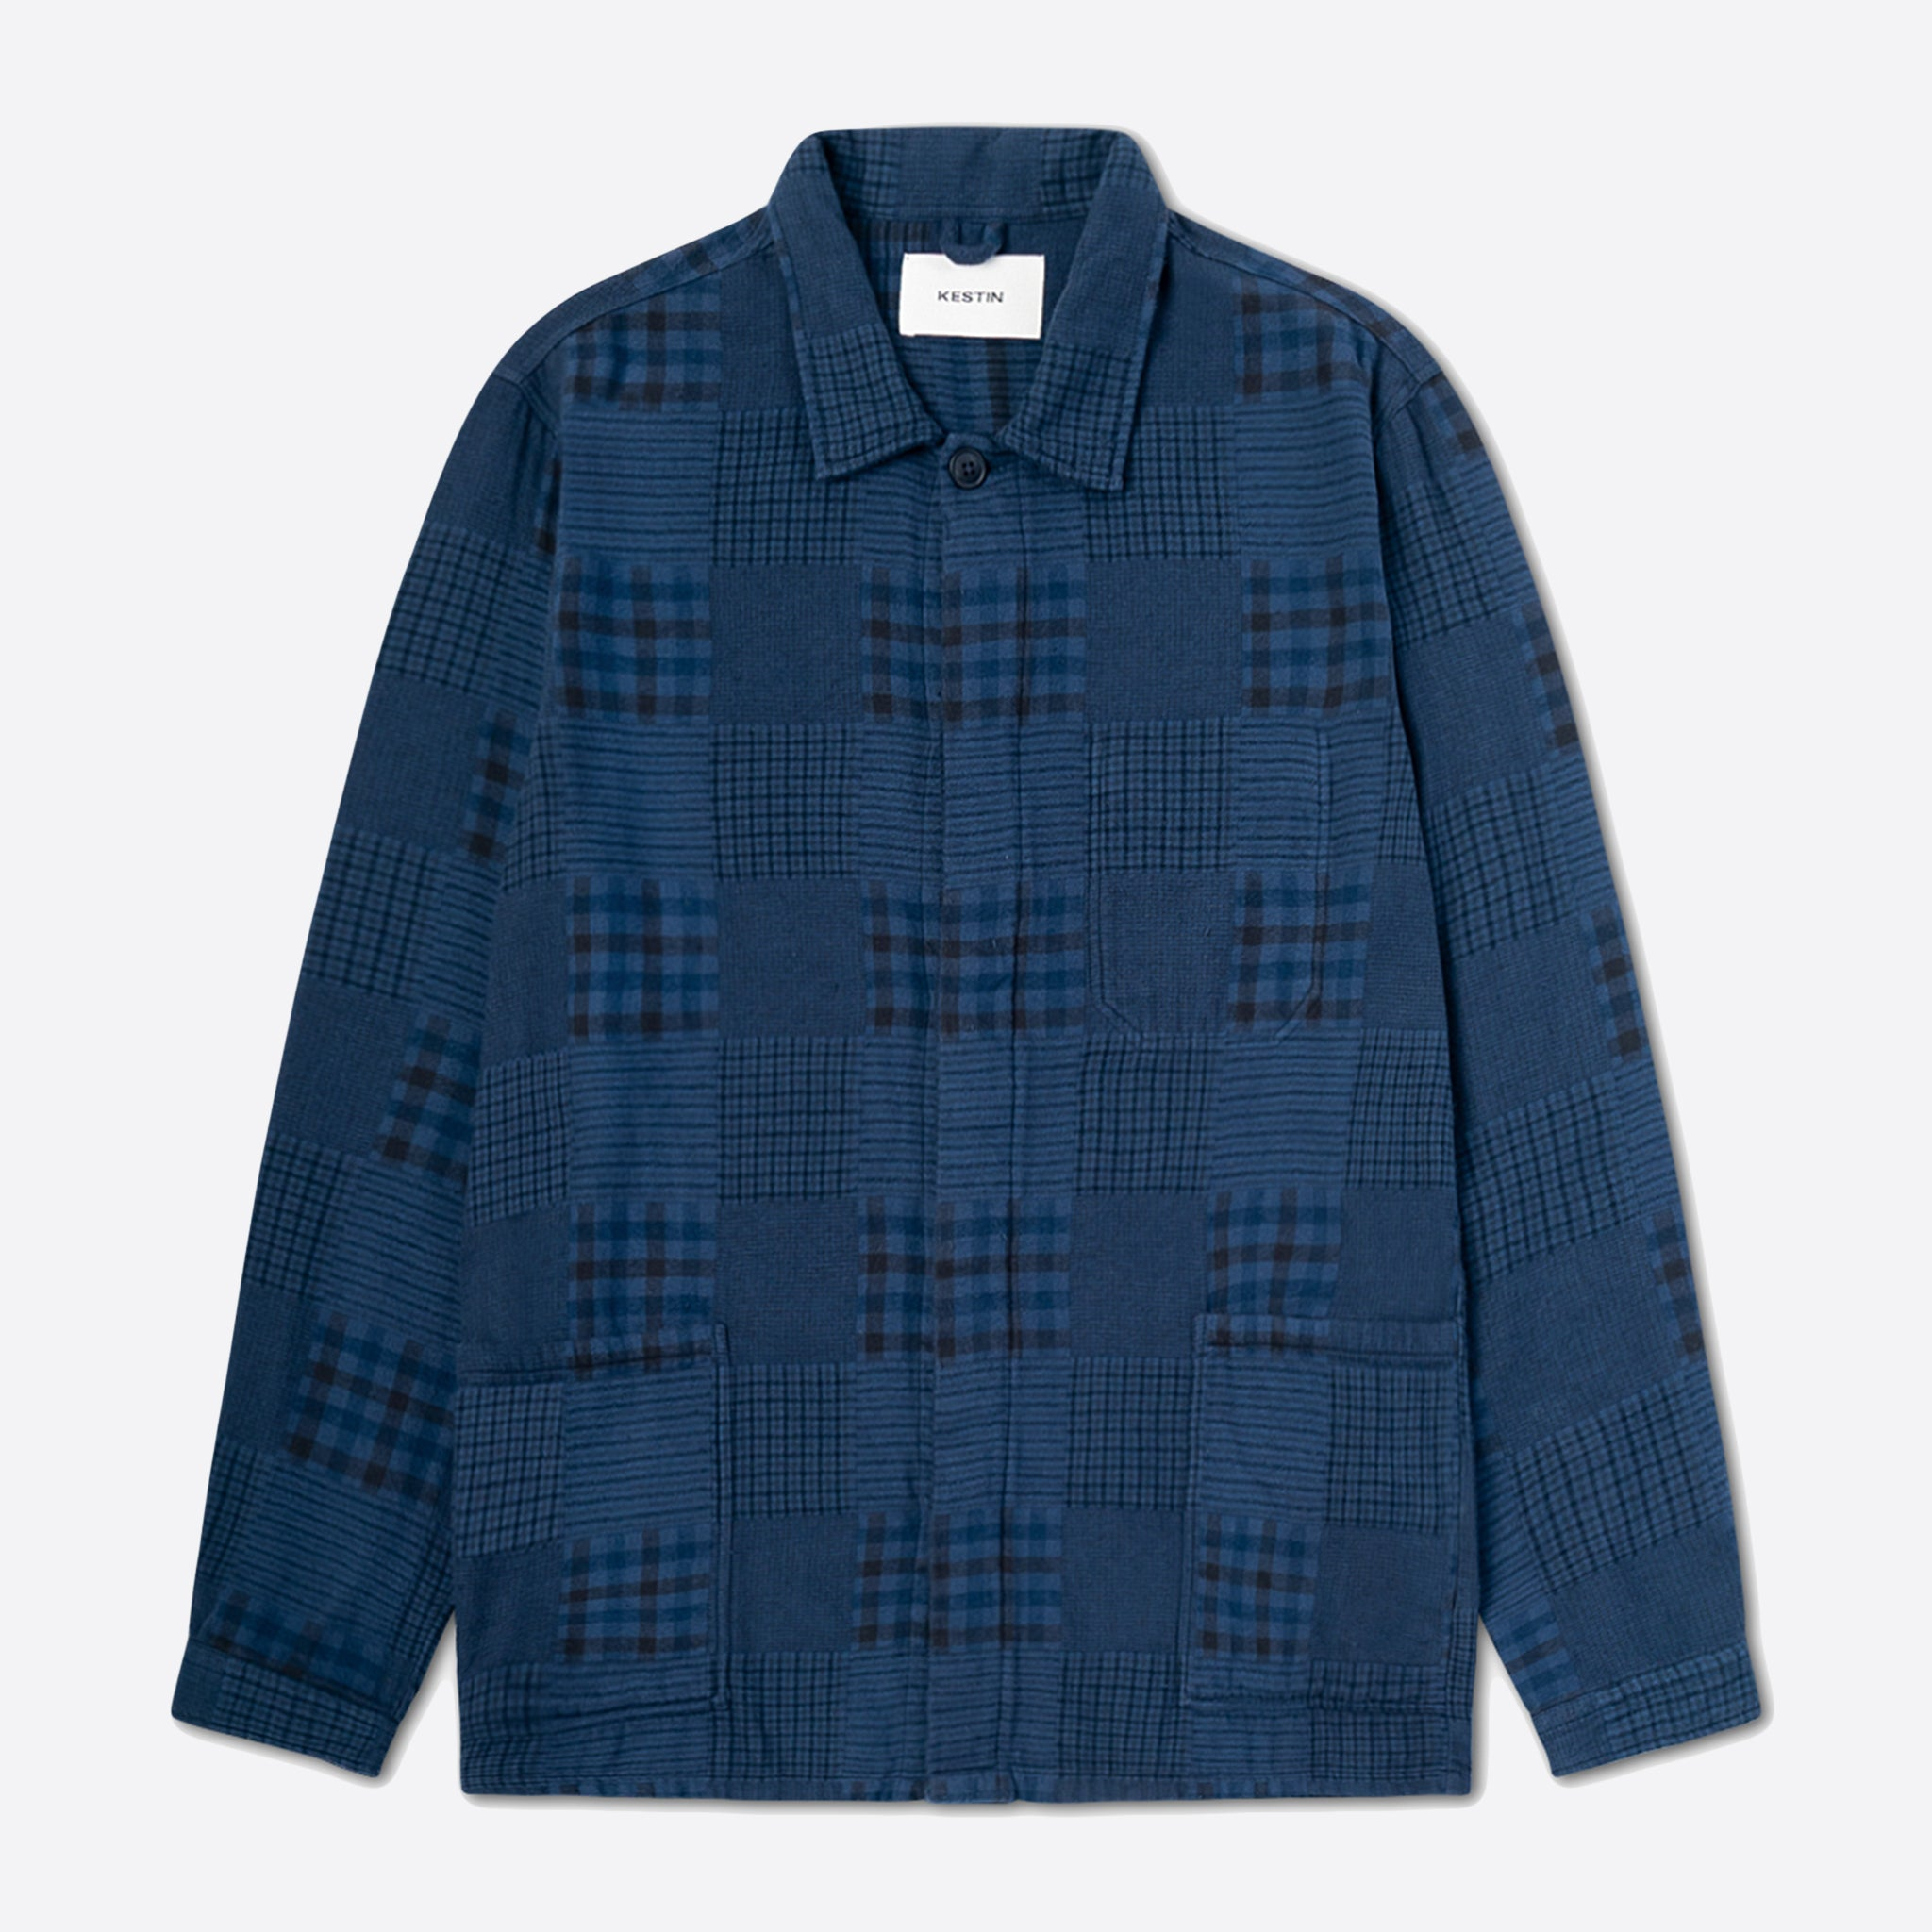 Kestin Hare Arbroath Shirt Jacket in Overdyed Woven Patchwork